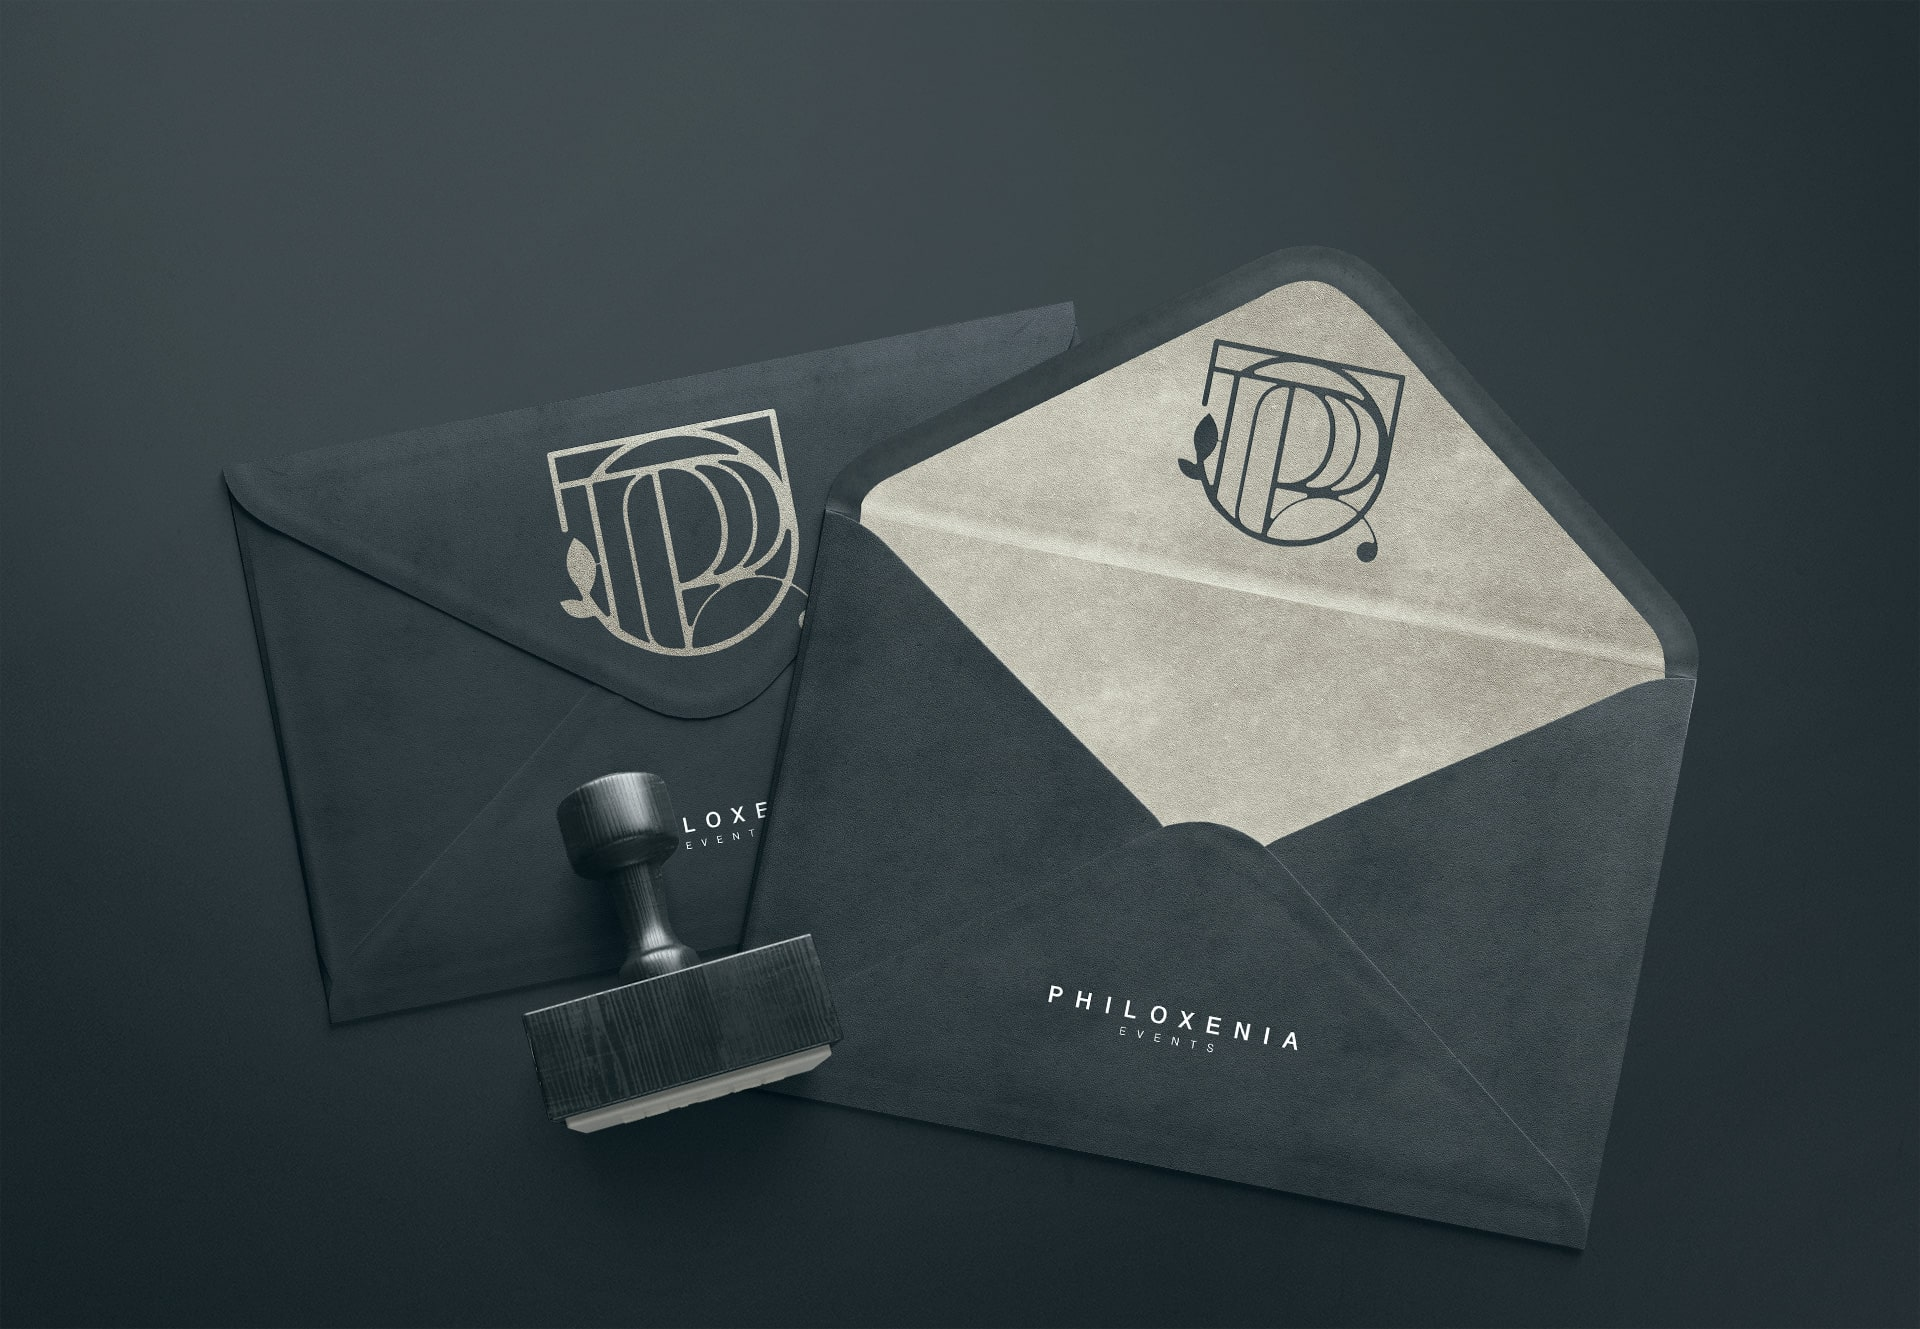 Envelope Design for Philoxenia